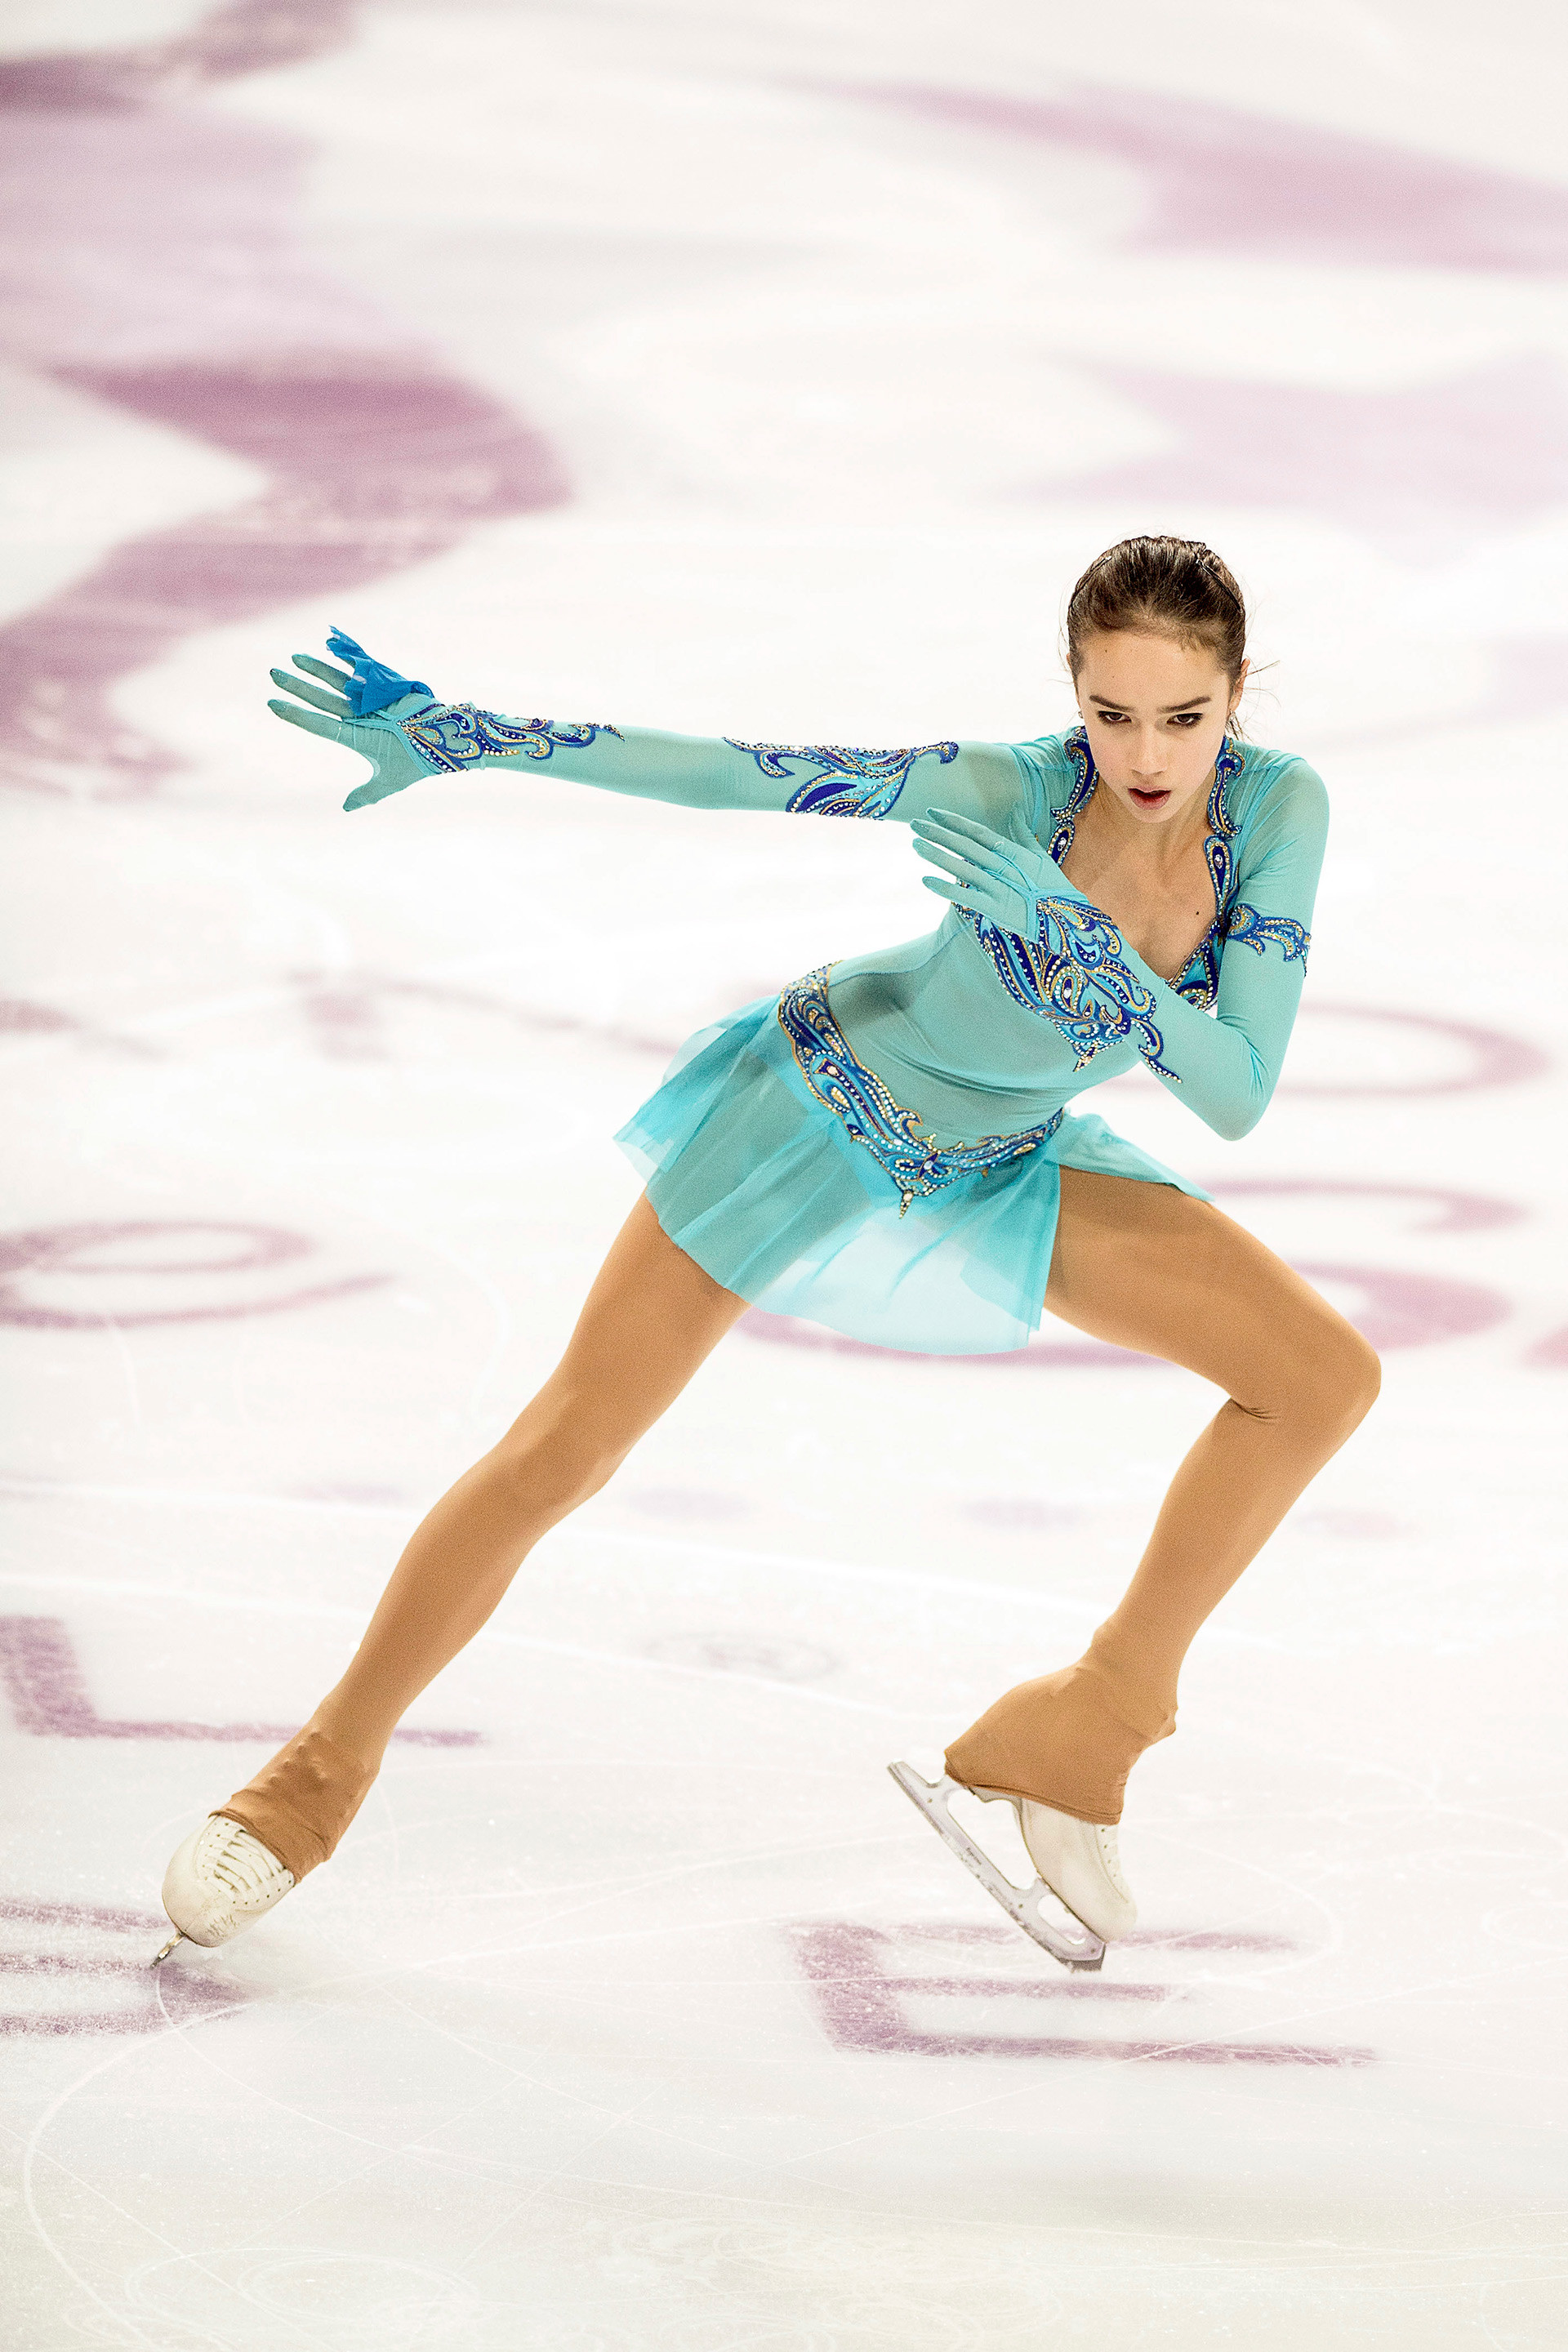 Who is Russia's latest skating star?